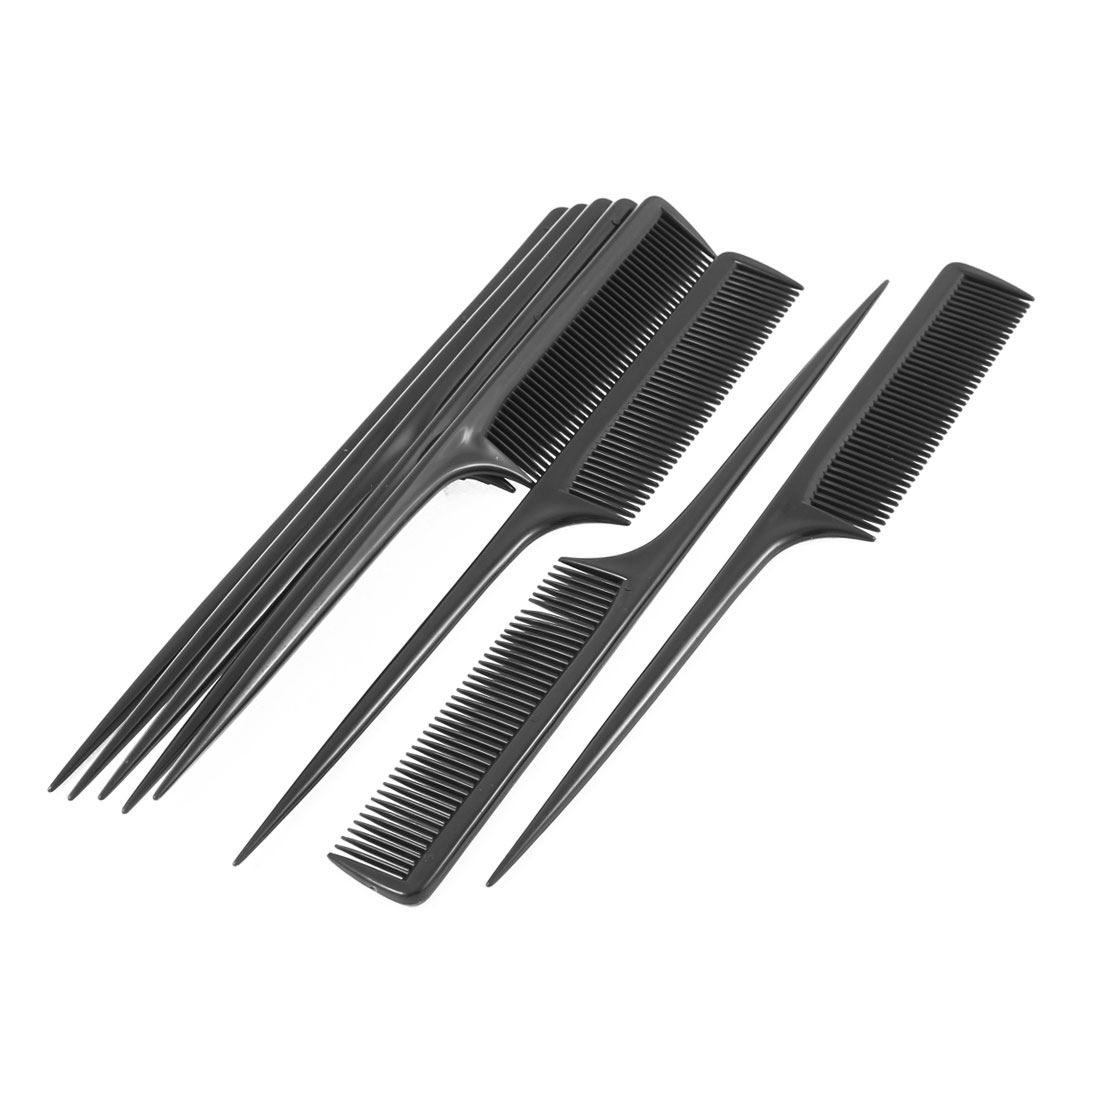 Plastic Handgrip Hair Rat Tail Combs Black 8Pcs